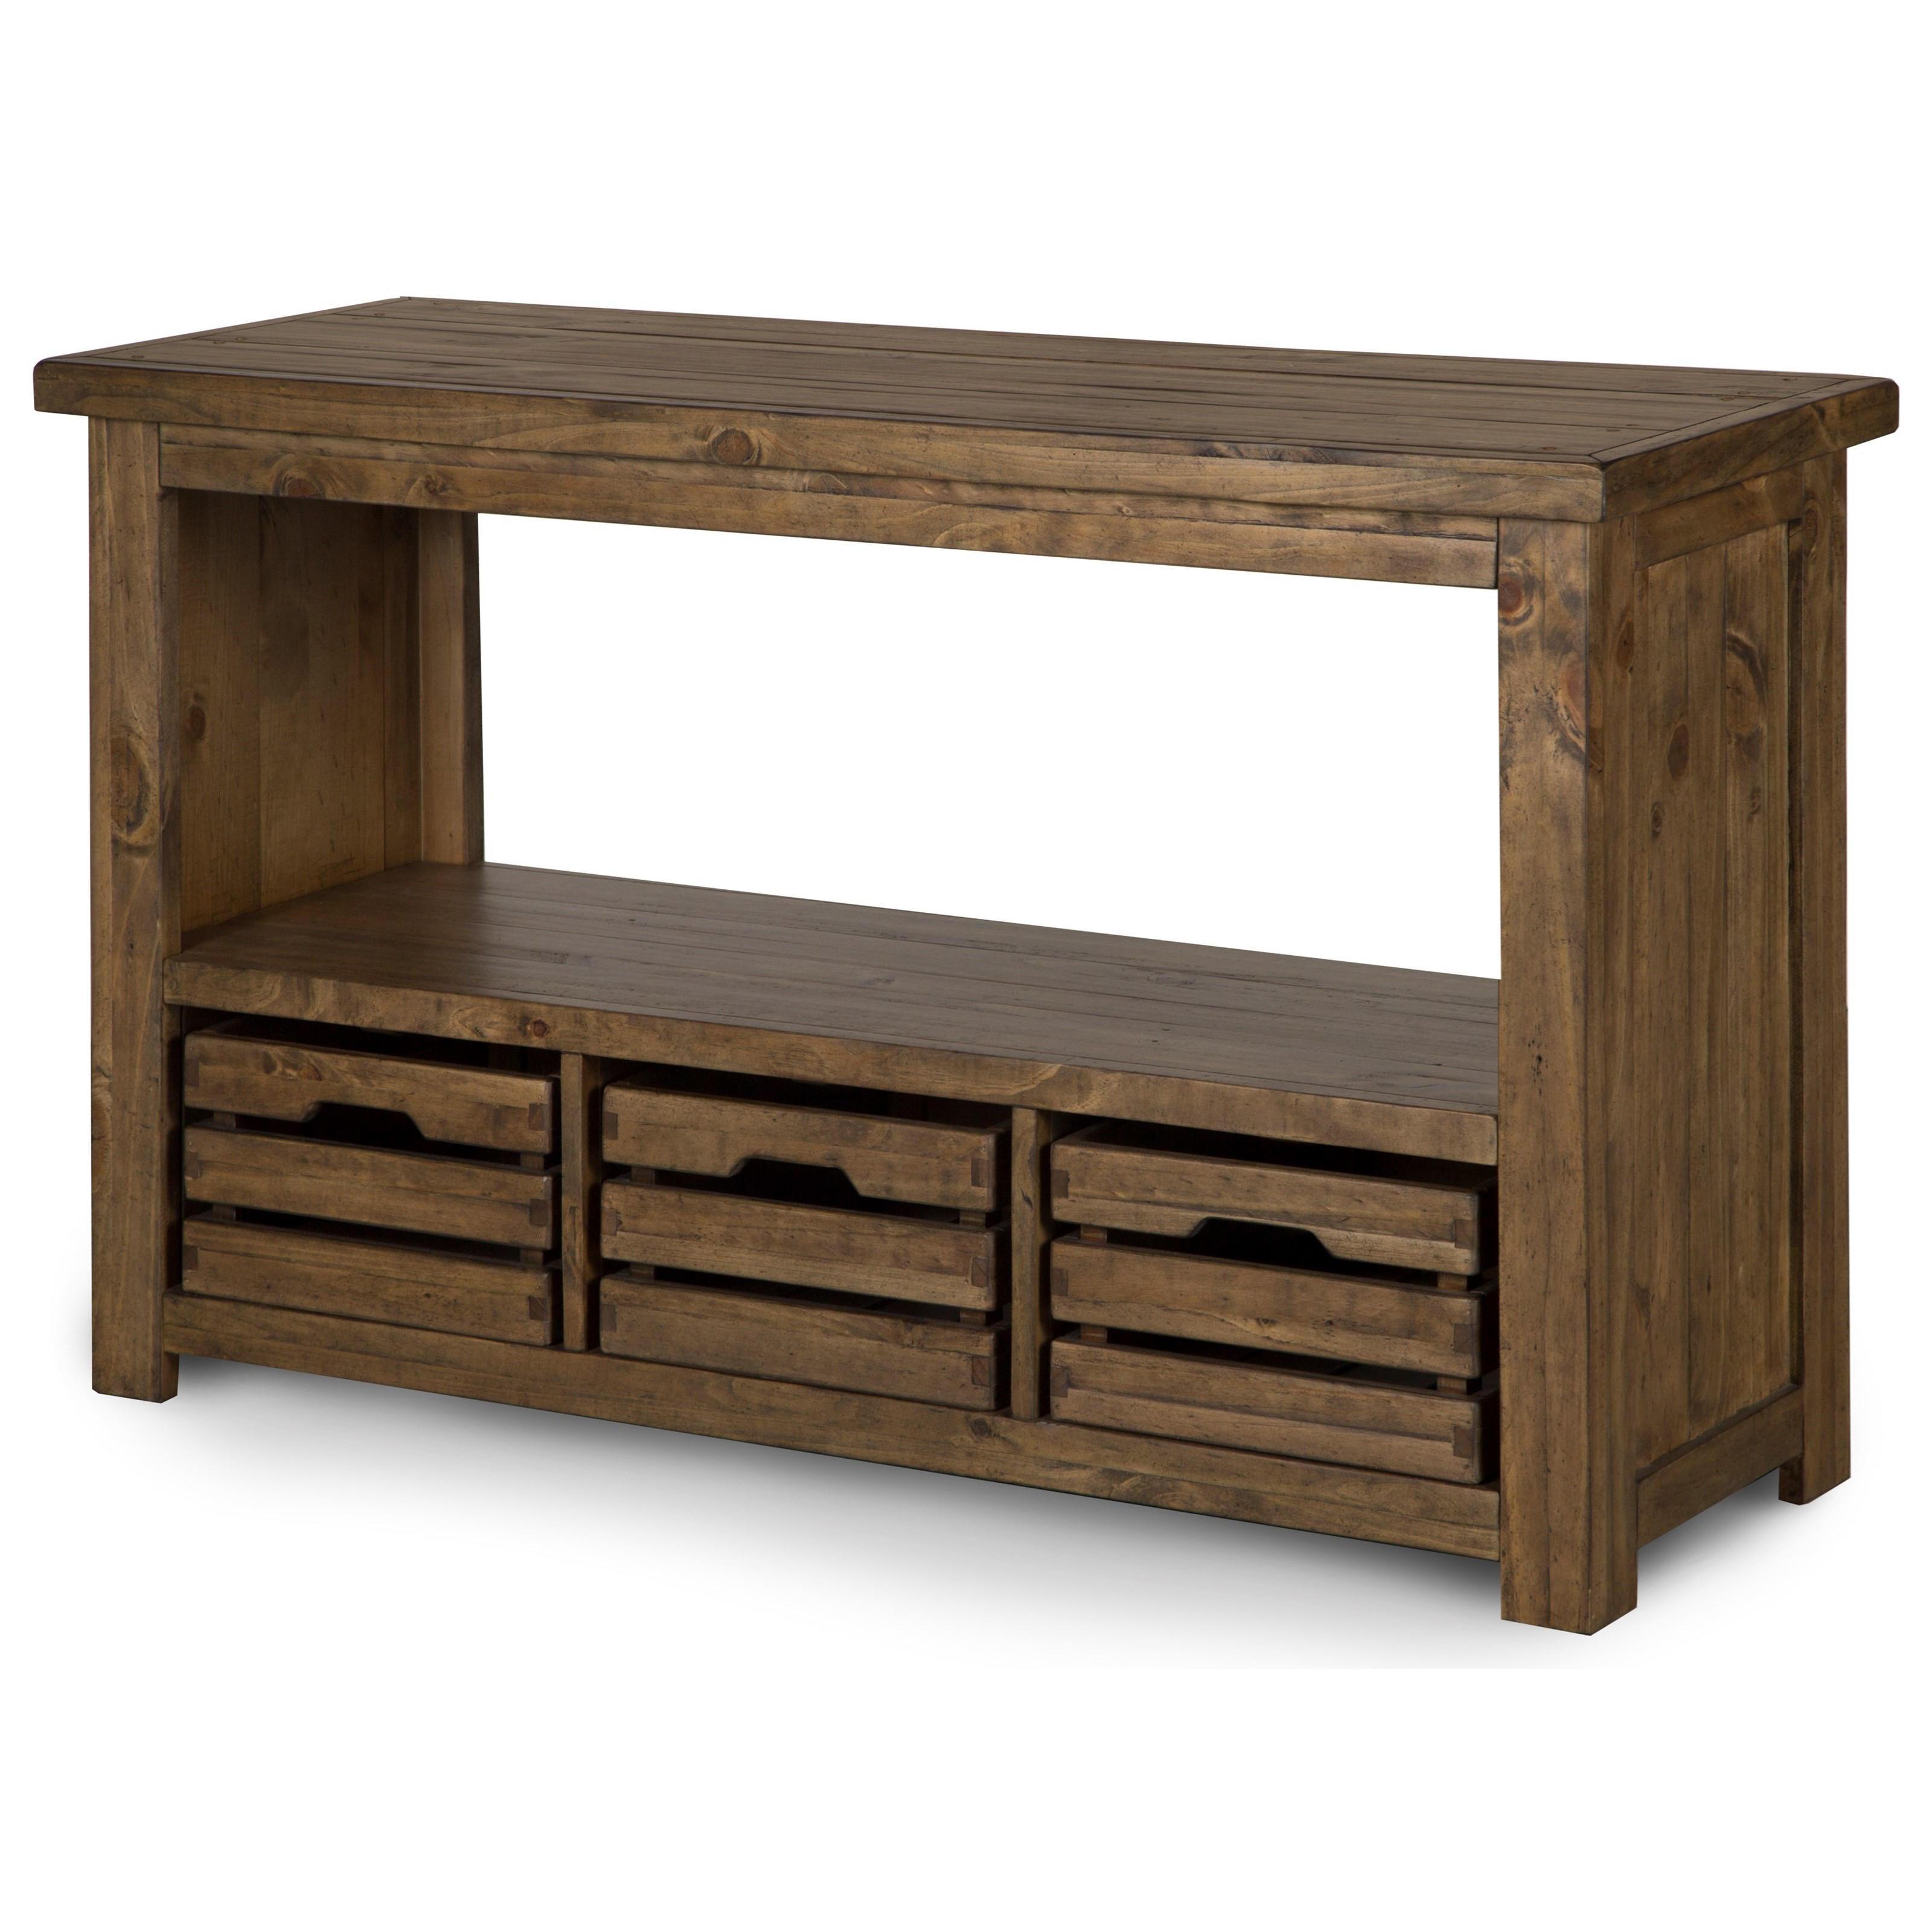 sofa table storage baskets sectional outdoor magnussen home stratton t4481 73 rectangular